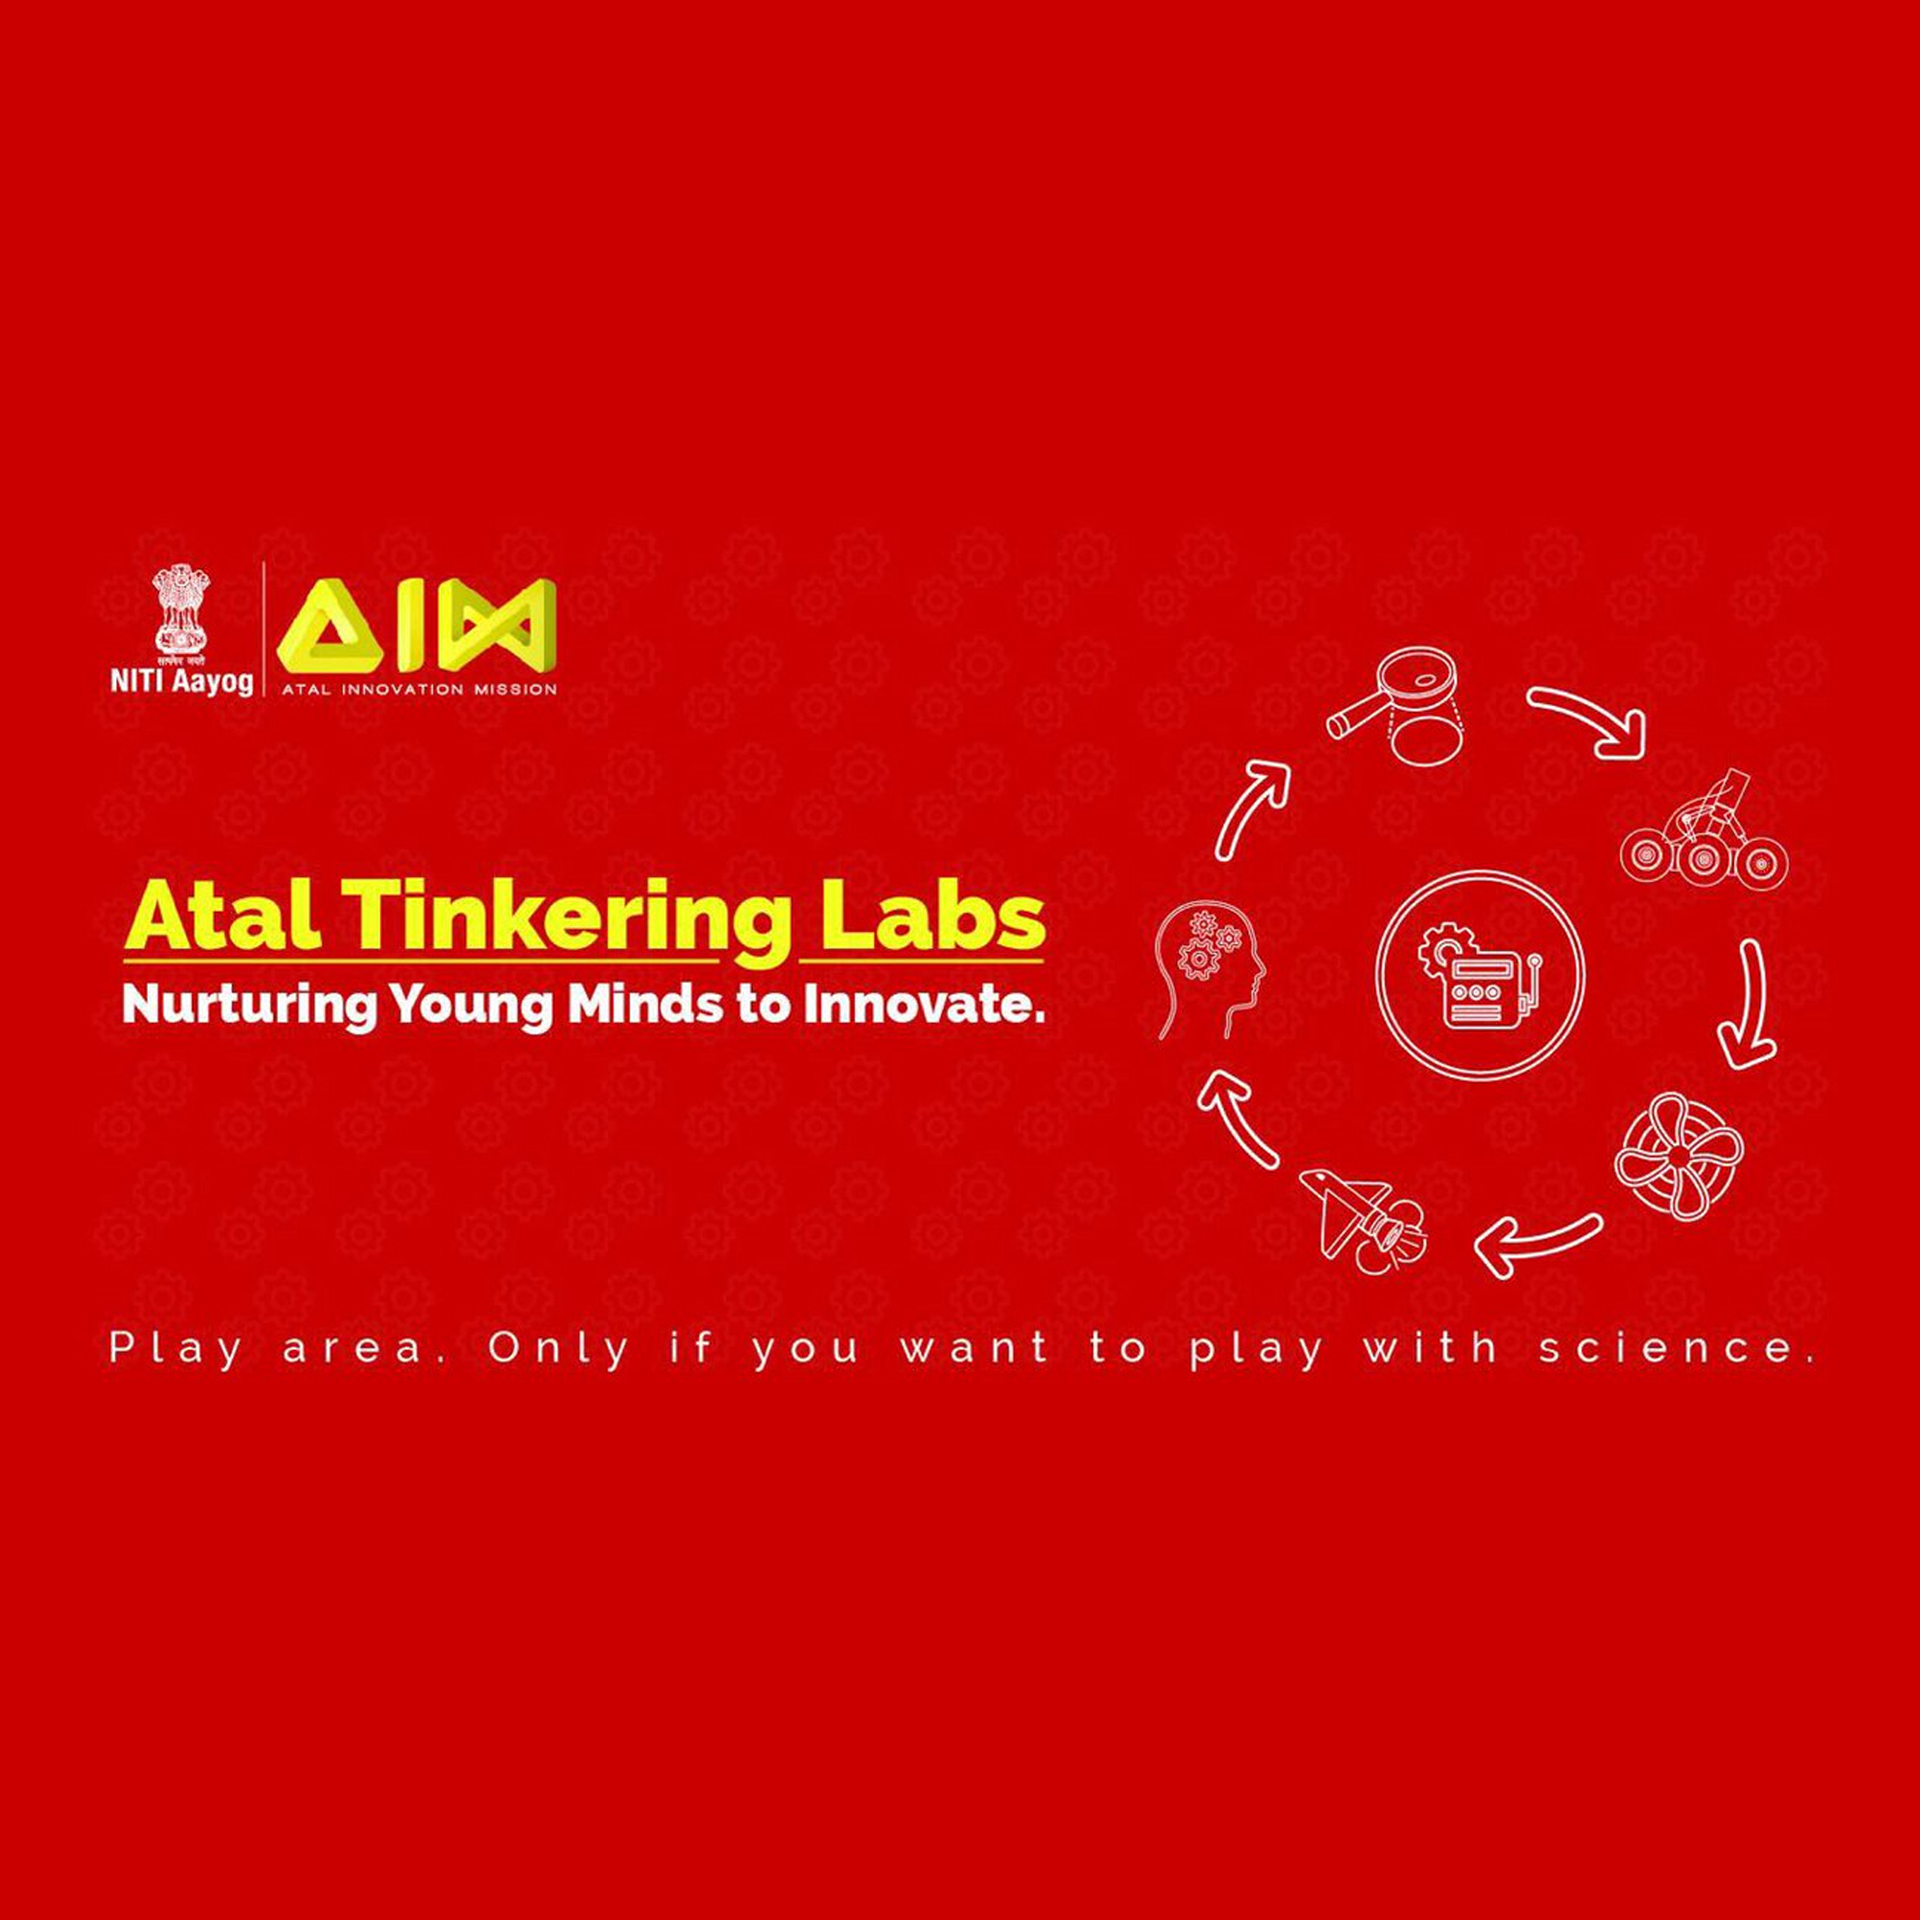 Atal Innovation Mission announces partnership with AICTE to adopt Atal Tinkering Labs